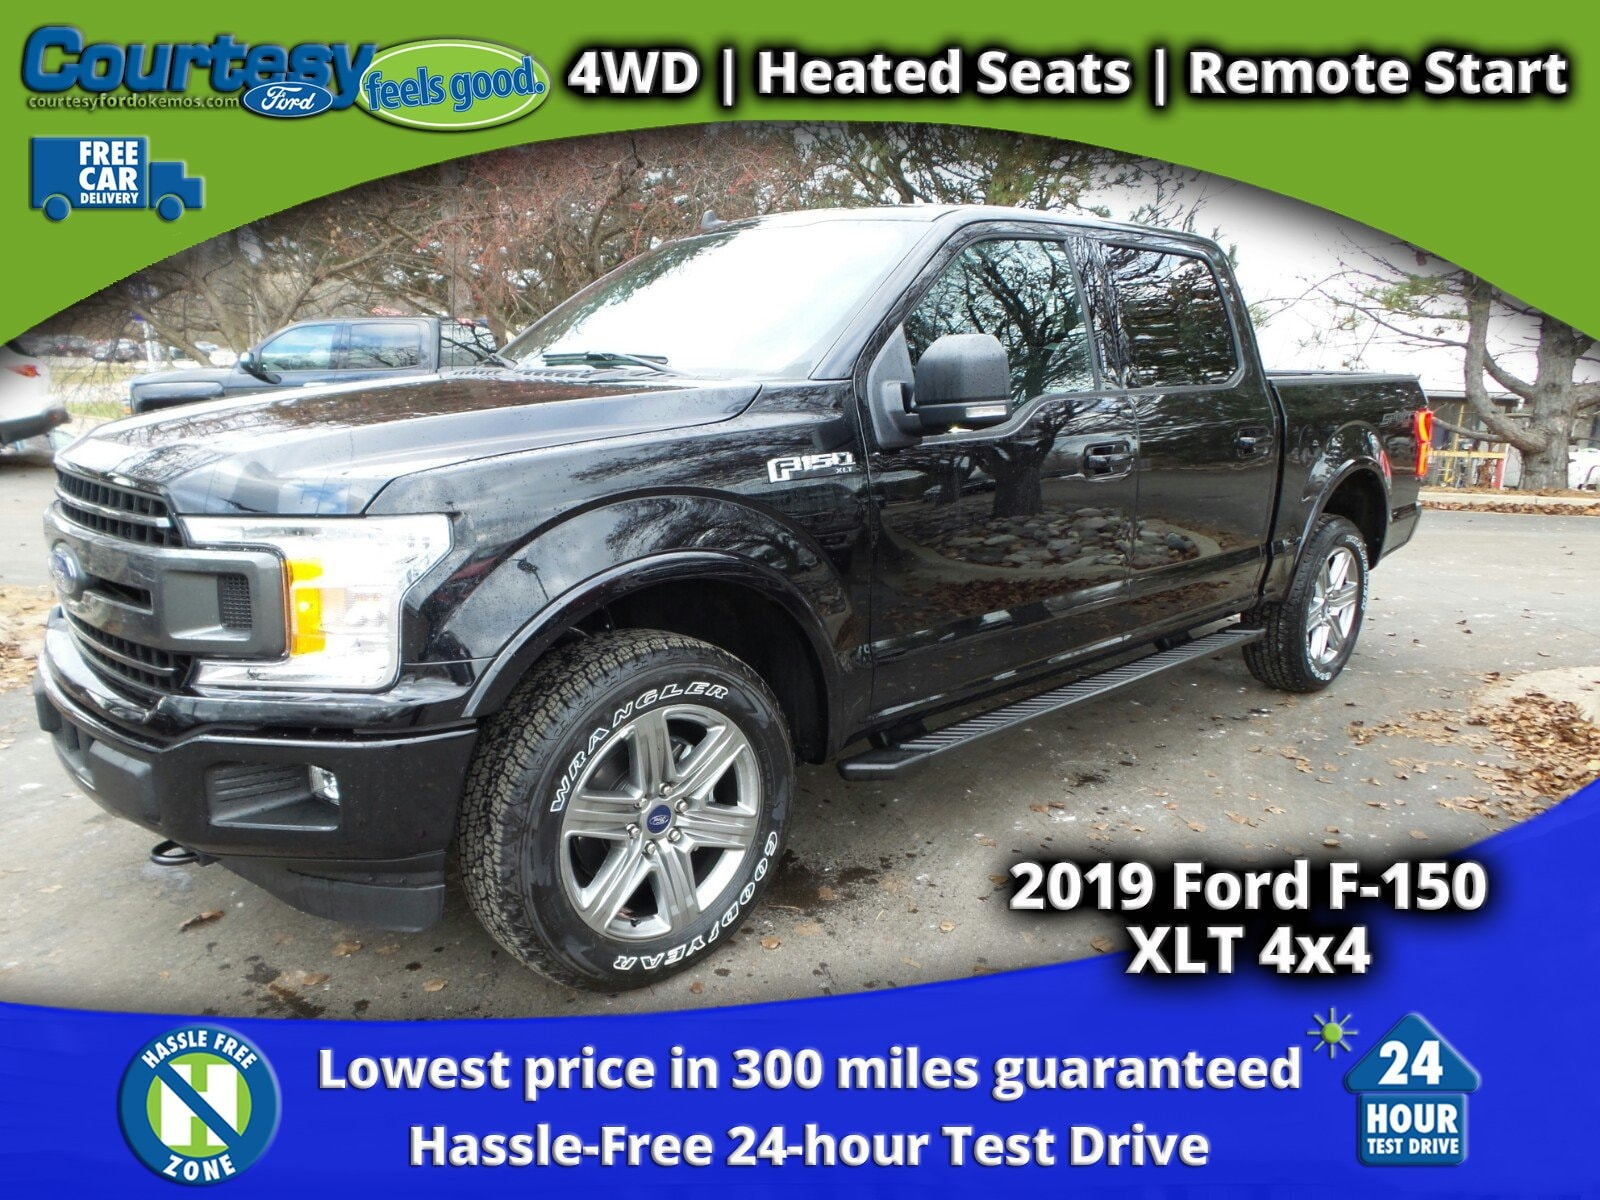 ford f150 a plan lease keystone rv tv wiring diagram new vehicle specials courtesy 2019 f 150